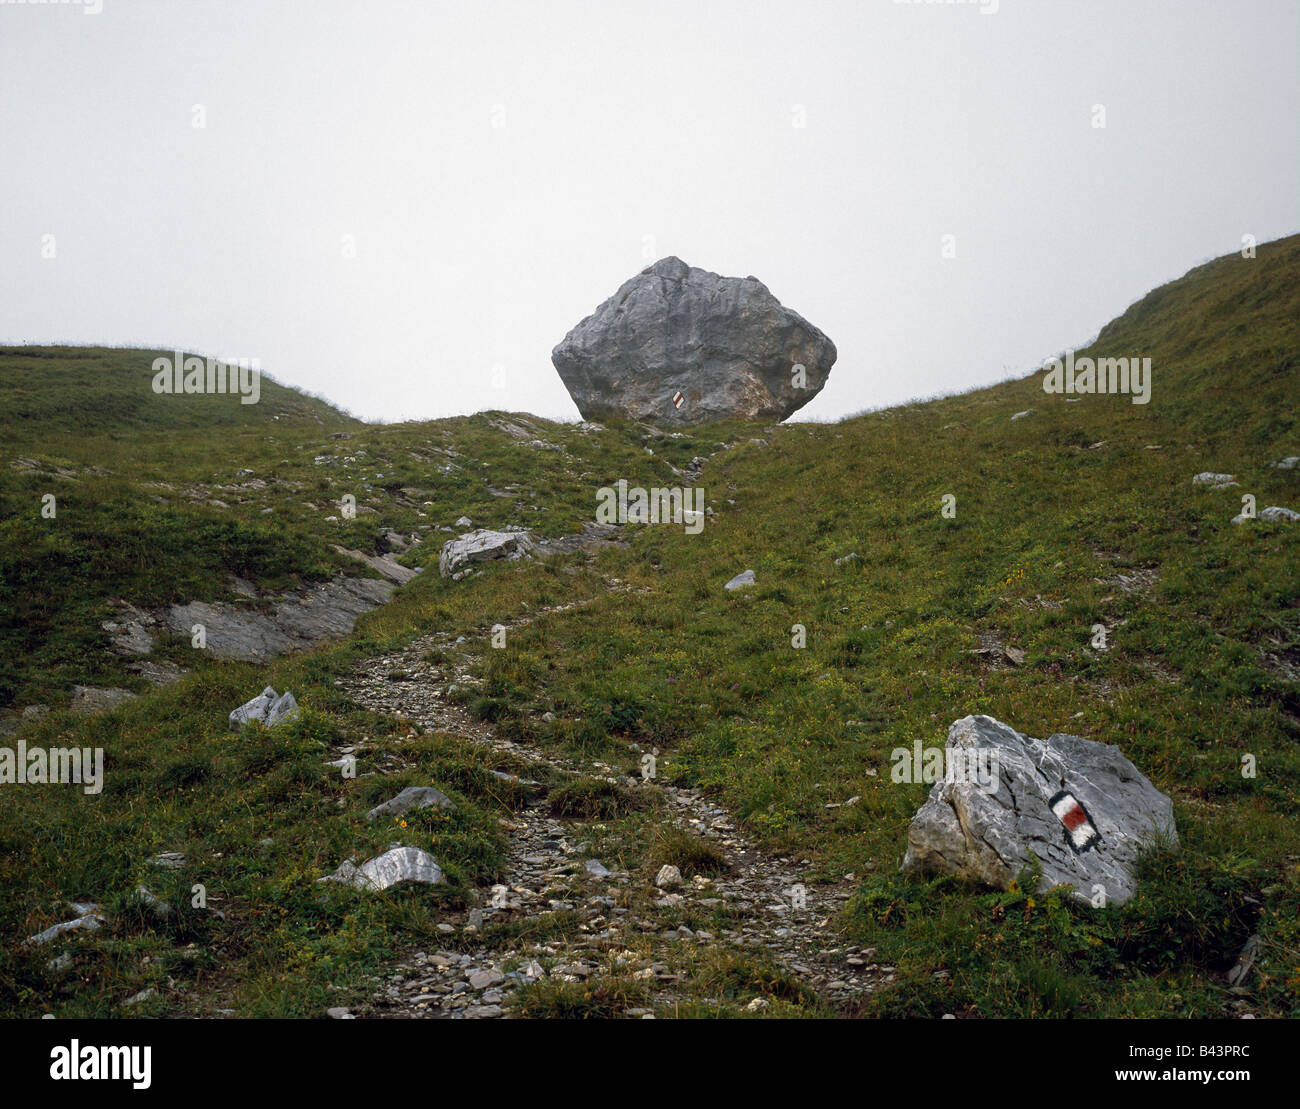 Trailmarkers on a big rock in the mist on the way up to Col du Sanetsch near Derborence Wallis Valais  Alps Switzerland - Stock Image